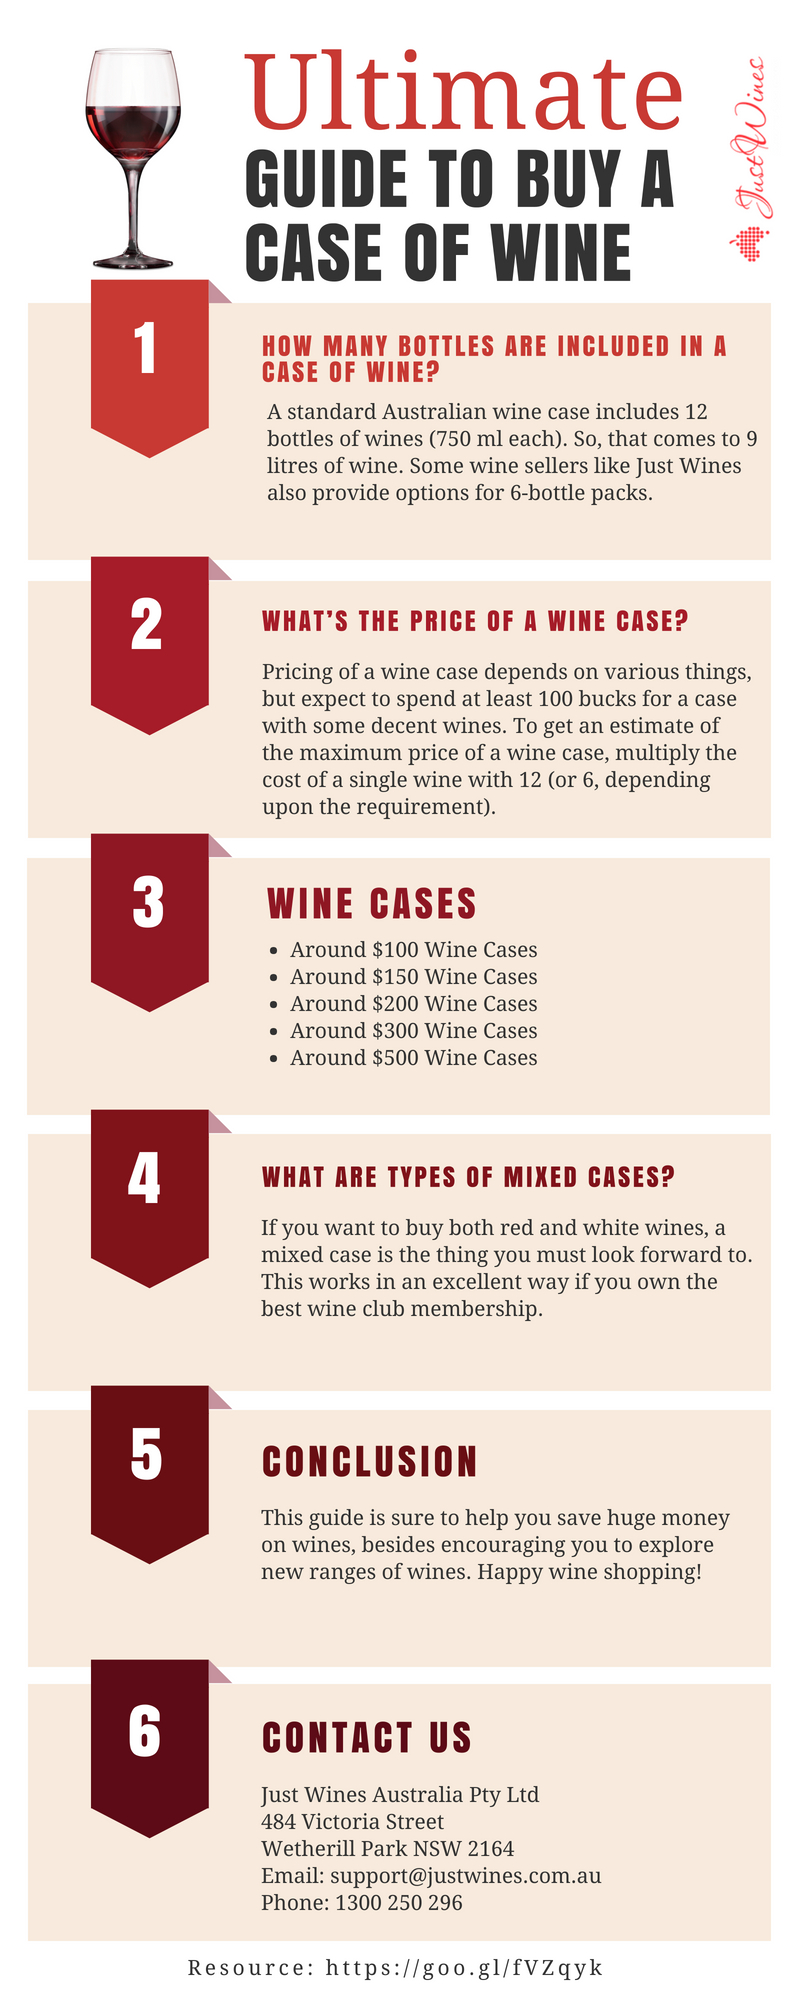 Guide to Buy a Case of Wine